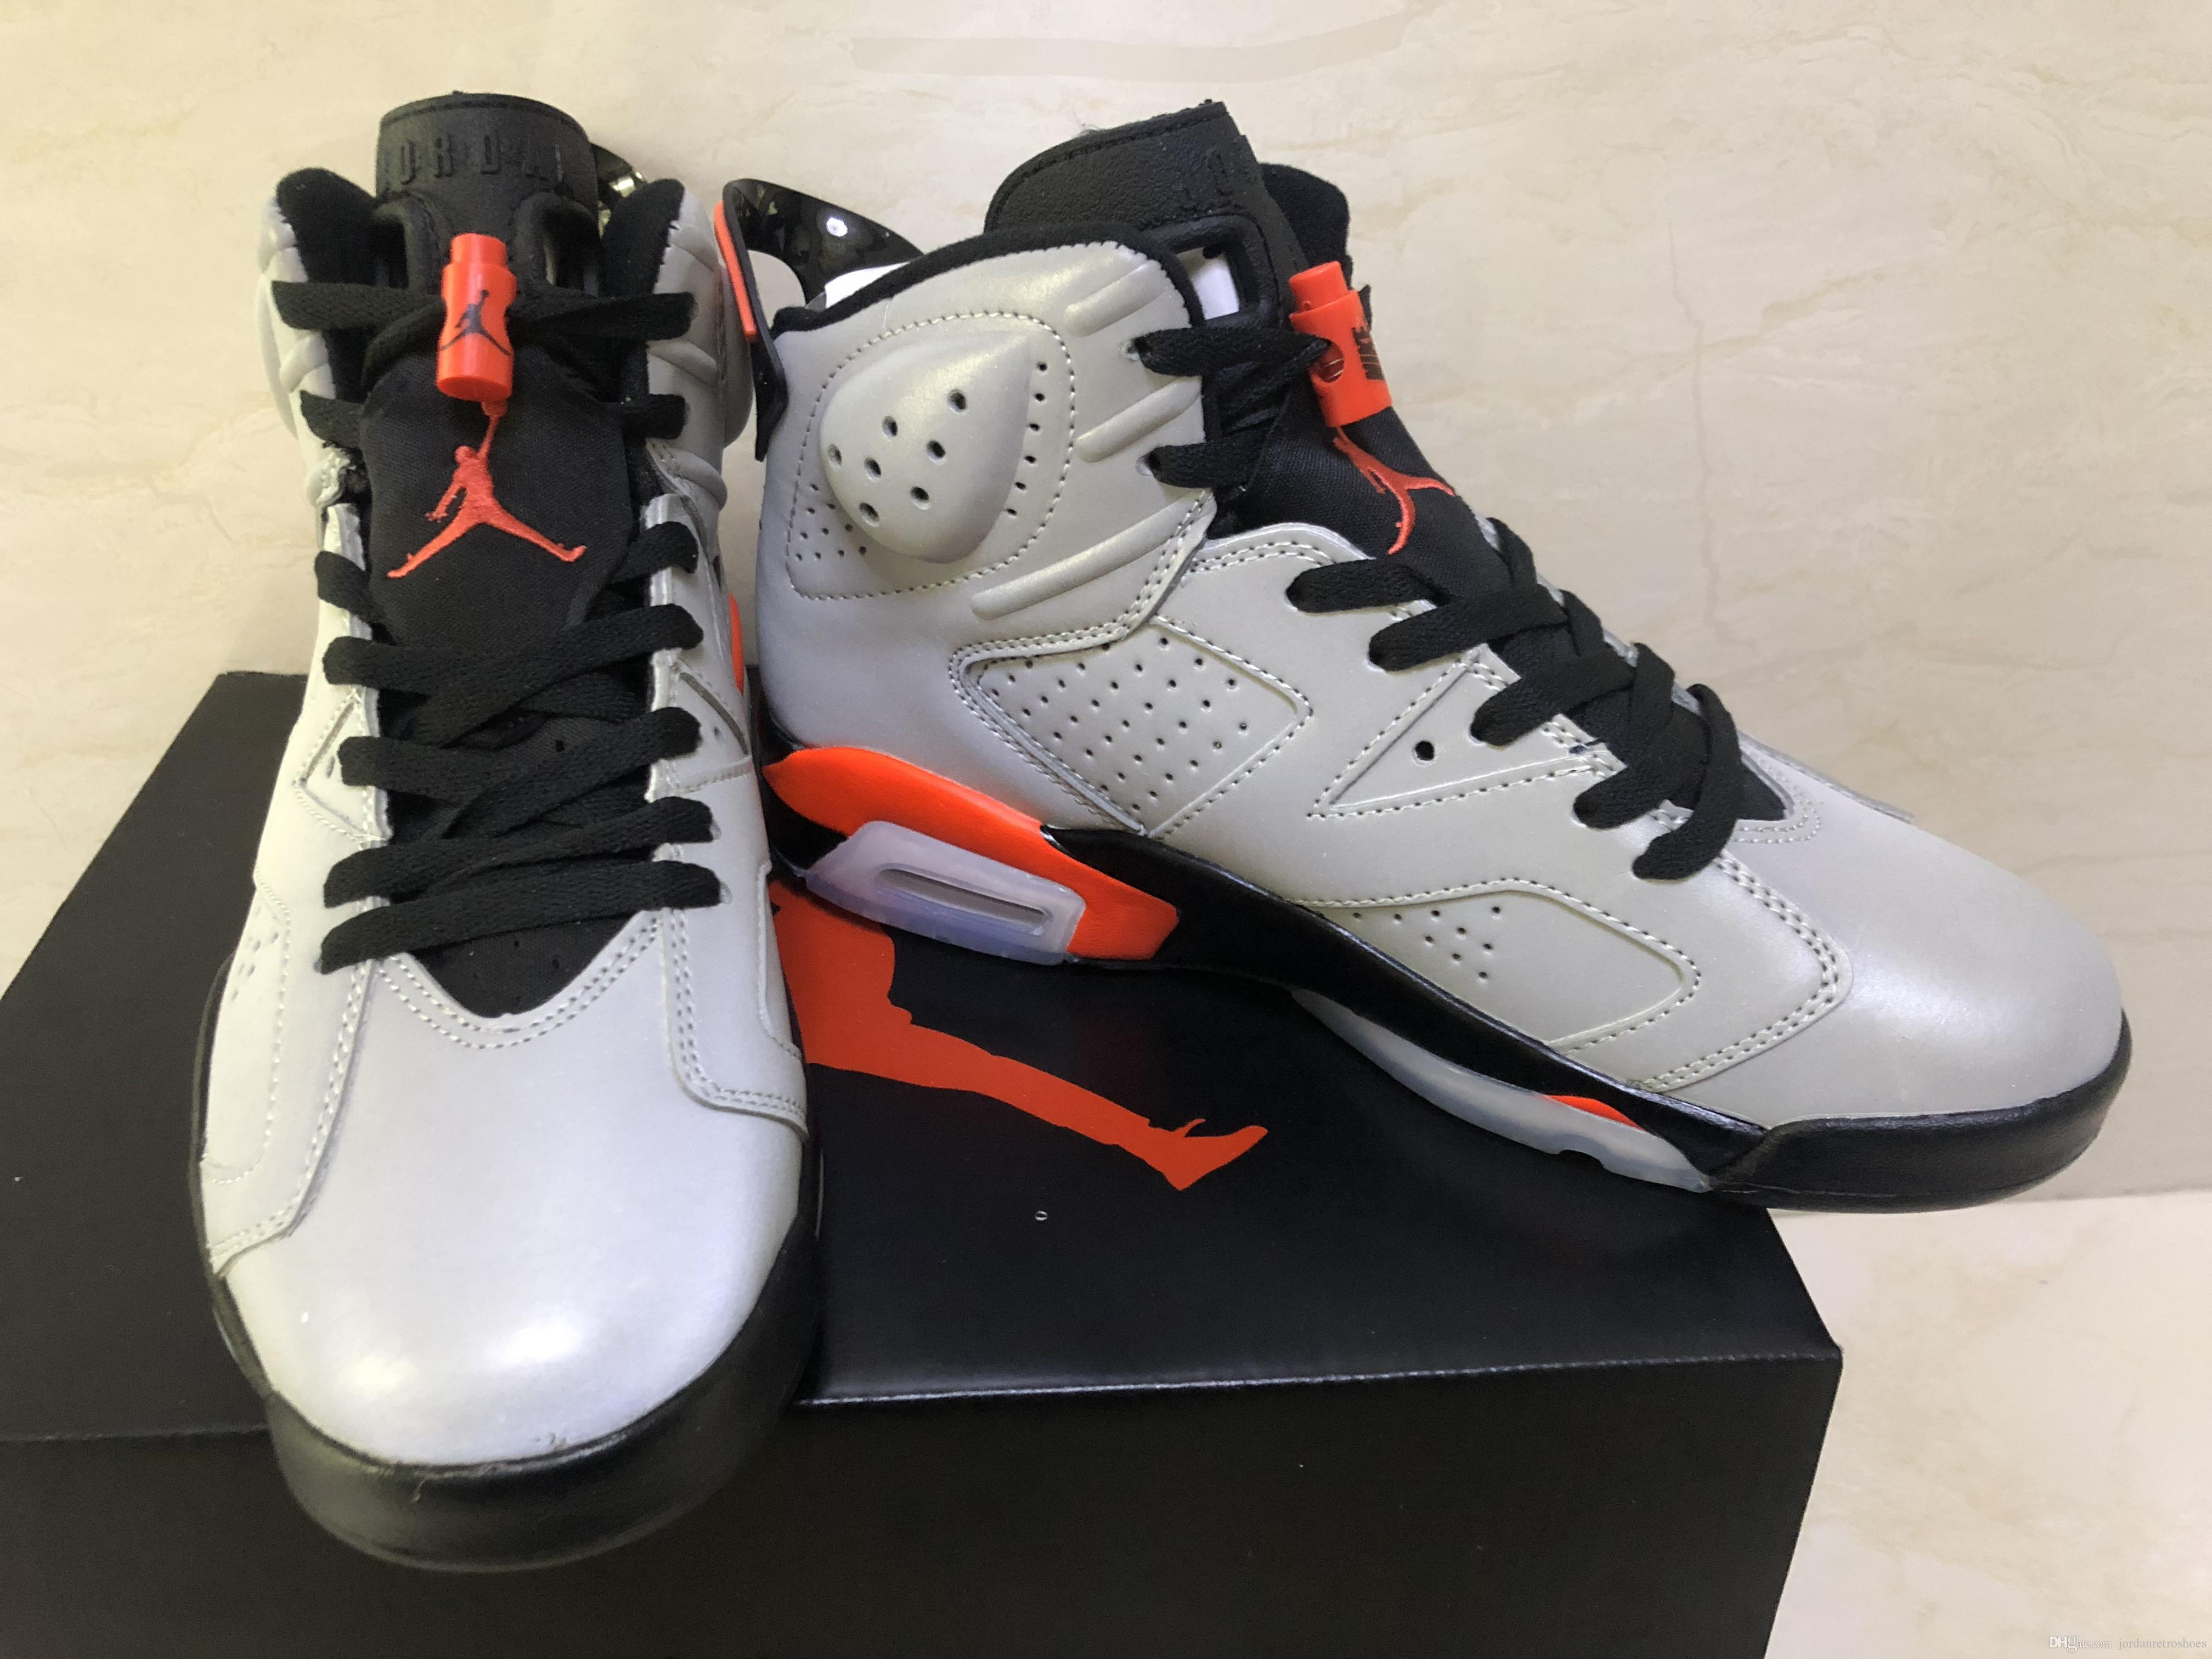 7802a7304ad2ed 6s Men s Basketball Shoes 6 Silver Gray 3M Refiective Lnfrared ...